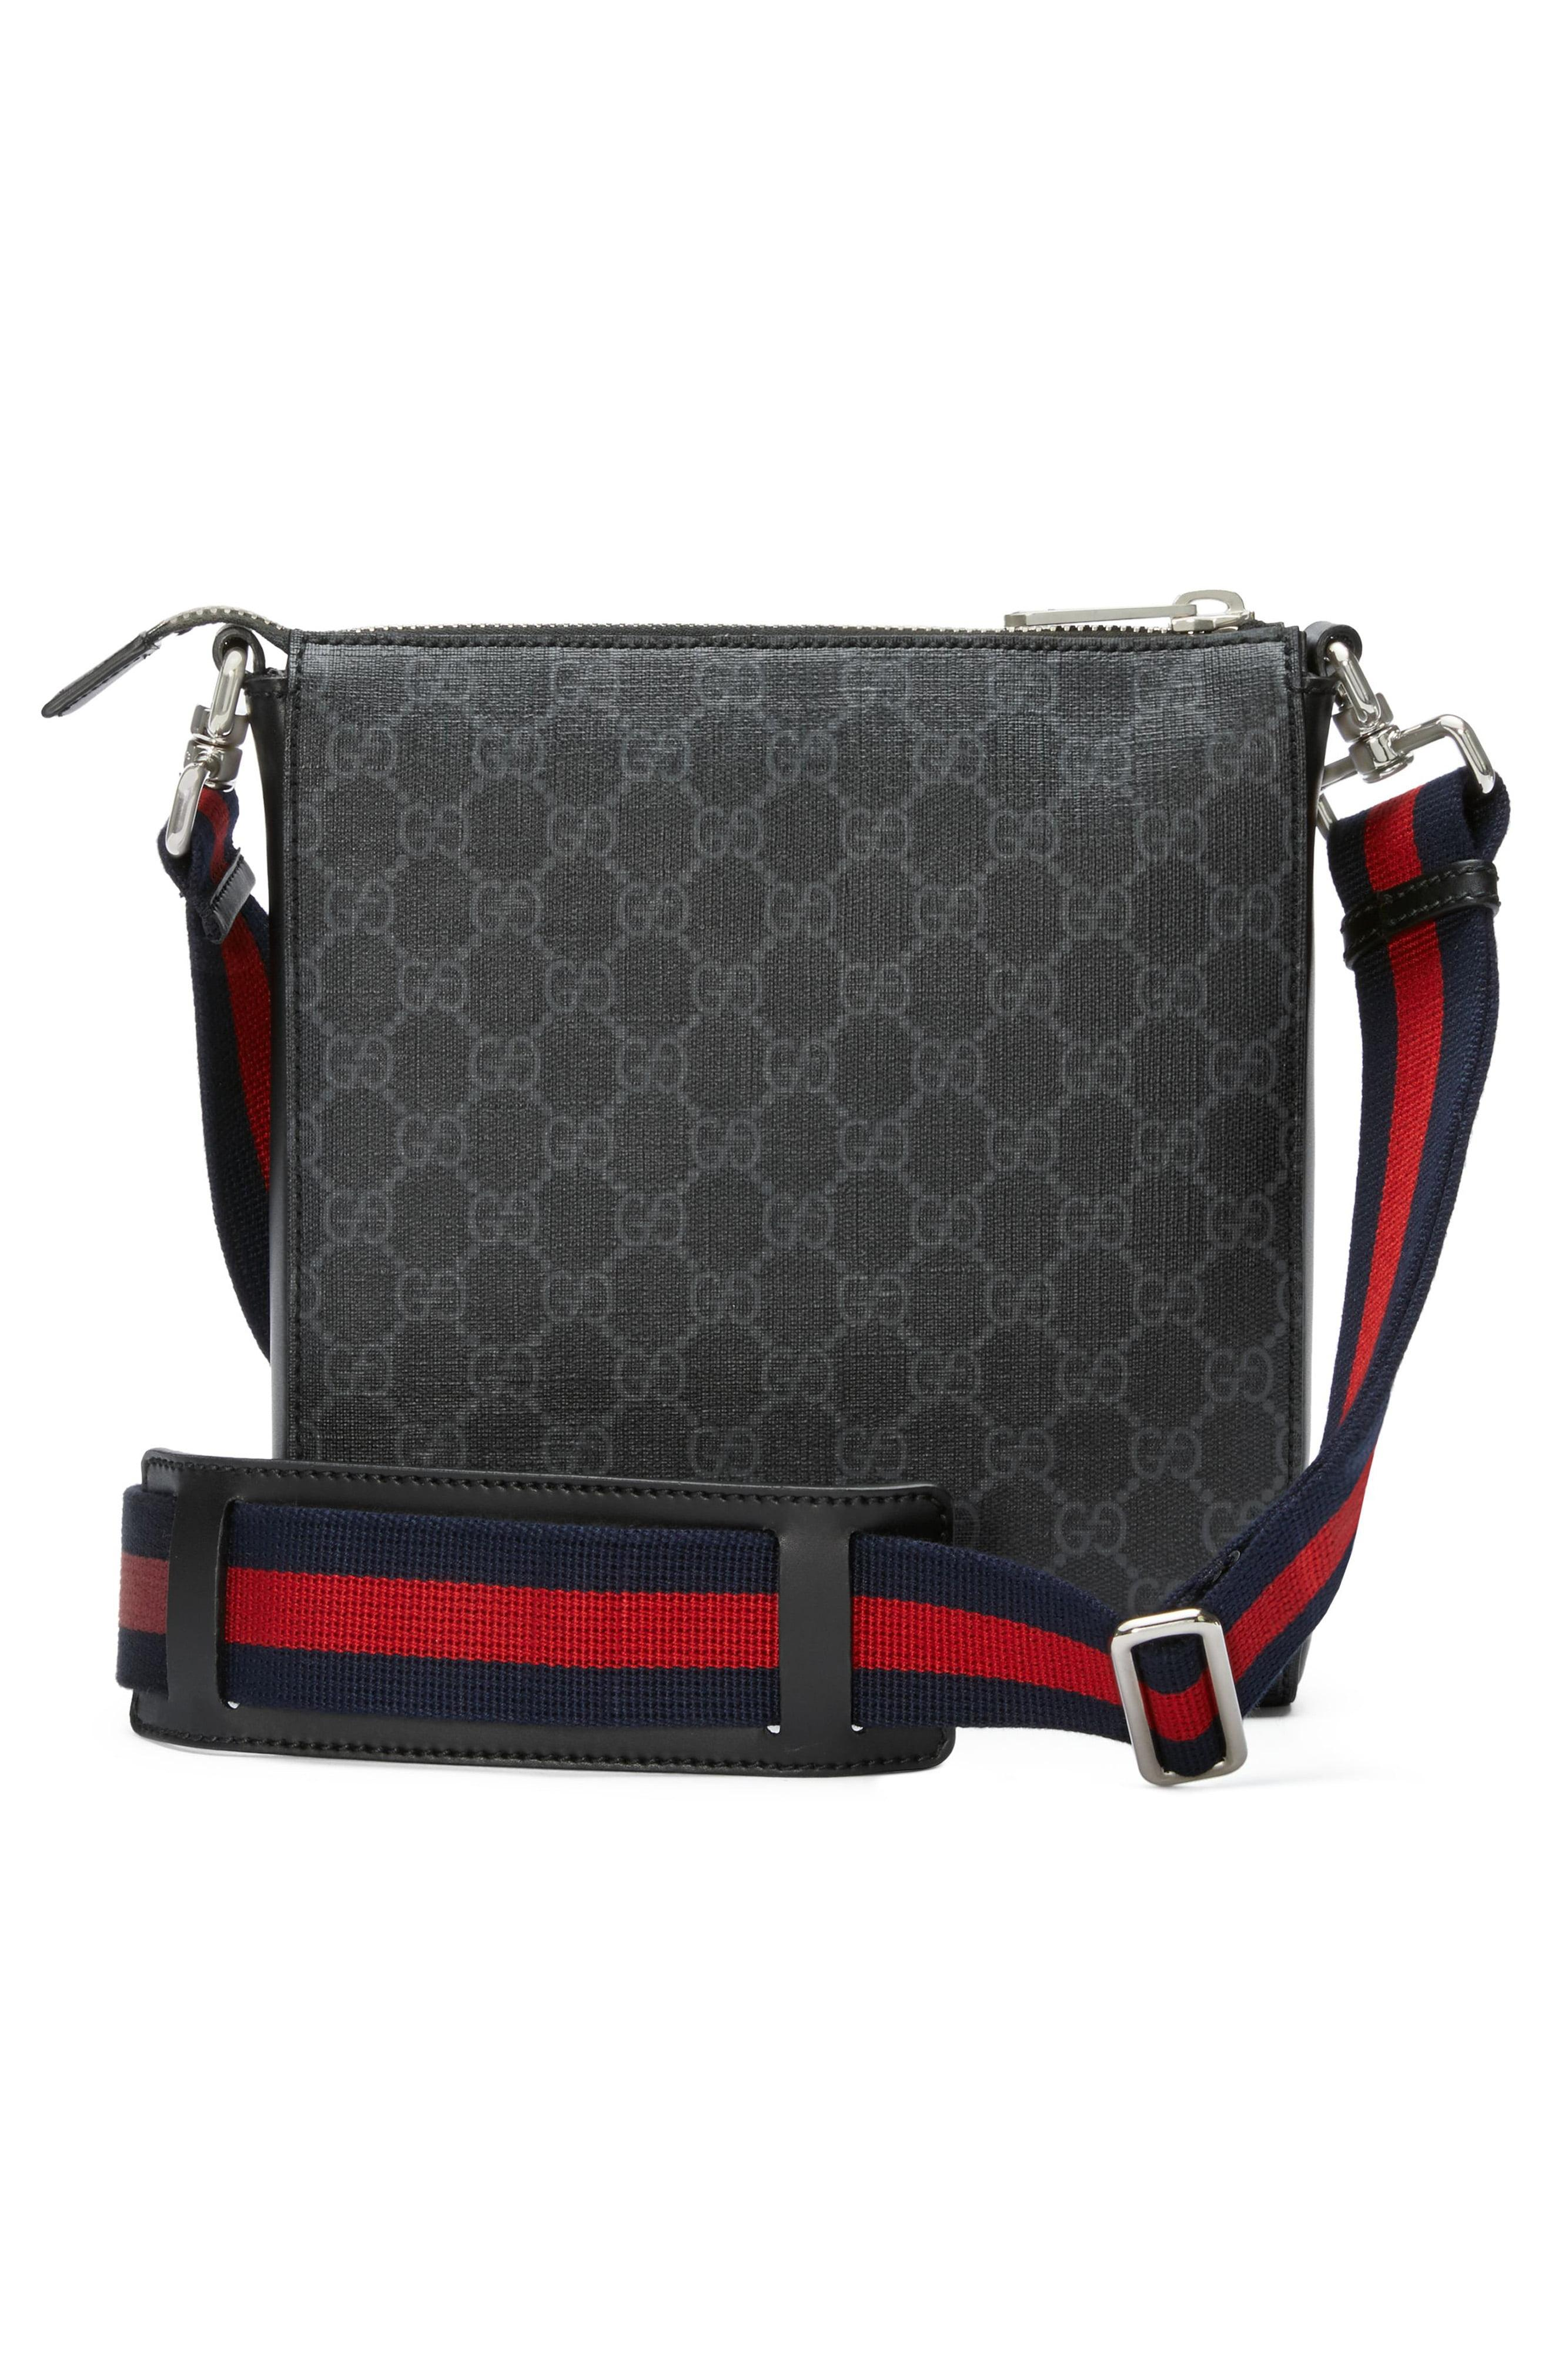 42555bc463f Lyst - Gucci Night Courrier GG Supreme Messenger in Black for Men ...